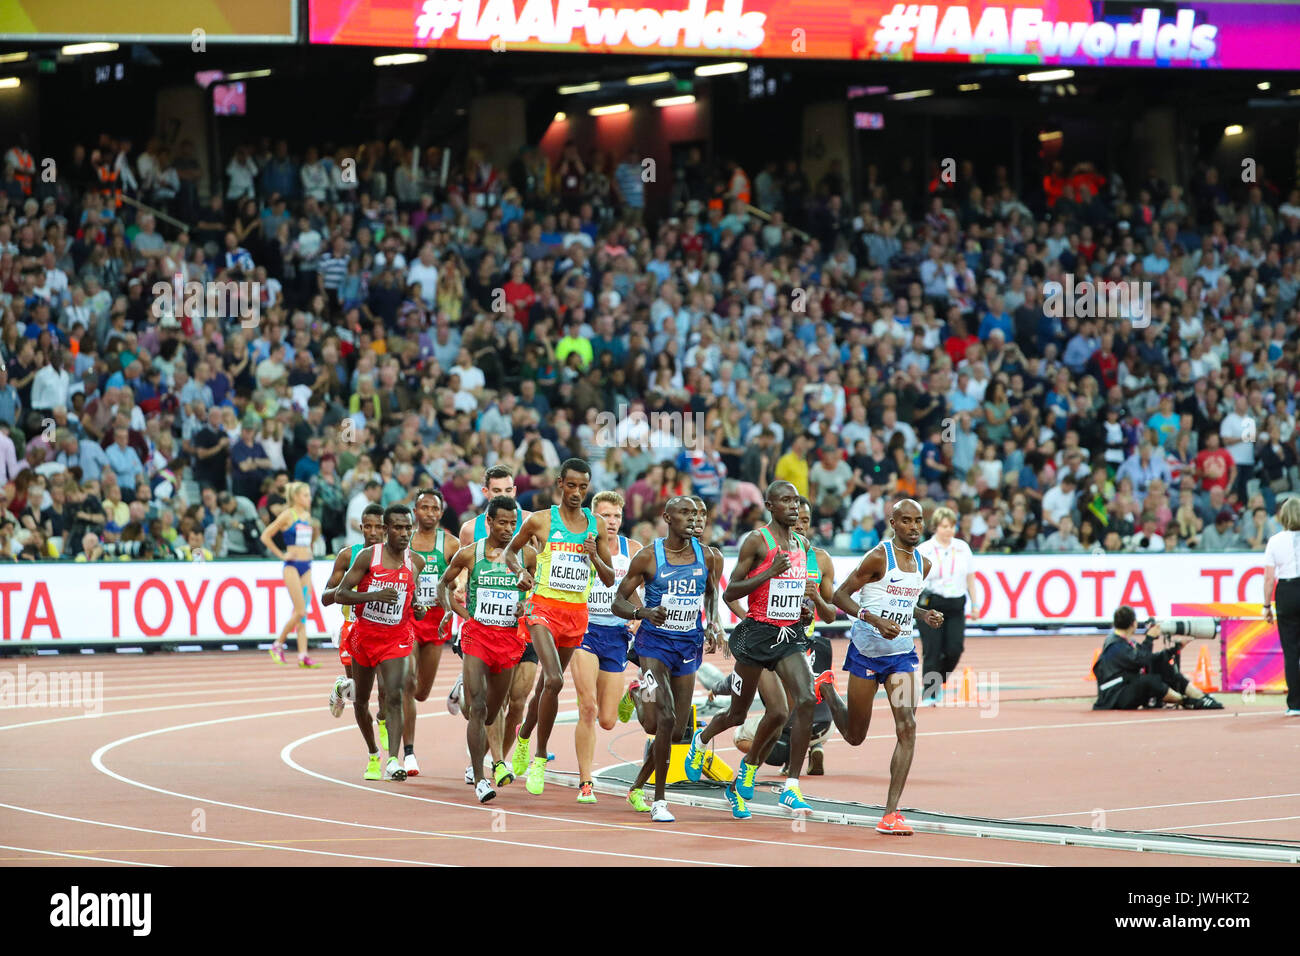 London, UK. 12th Aug, 2017.  Mo Farah, Great Britain, keeps an eye on a resurgent Cyrus Rutto, Kenya, in the men's 5000m final on day nine of the IAAF London 2017 world Championships at the London Stadium. Credit: Paul Davey/Alamy Live News - Stock Image